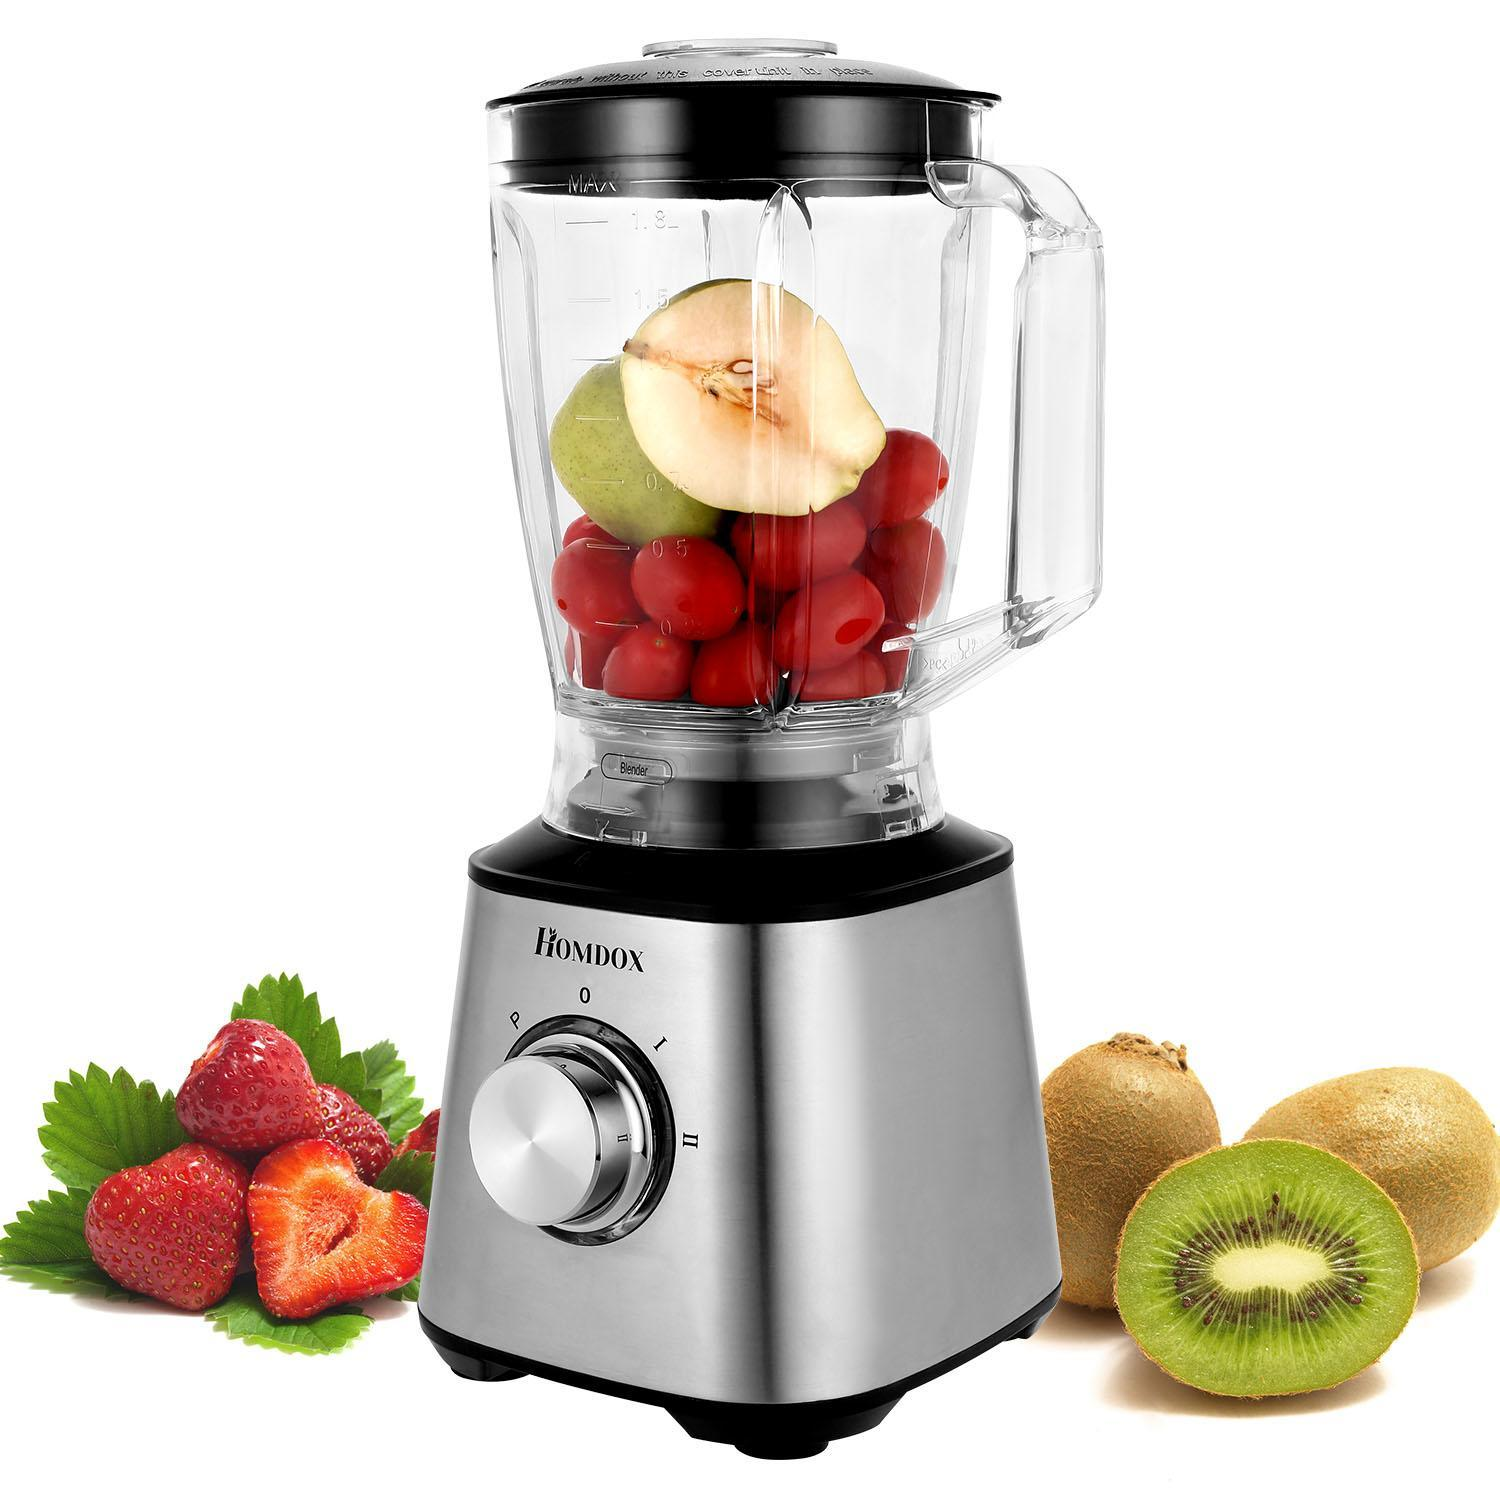 Professional High Speed Blender Home Commercial Smoothie Mixer Heavy Duty Food Processor for Ice Soup Mincemeat